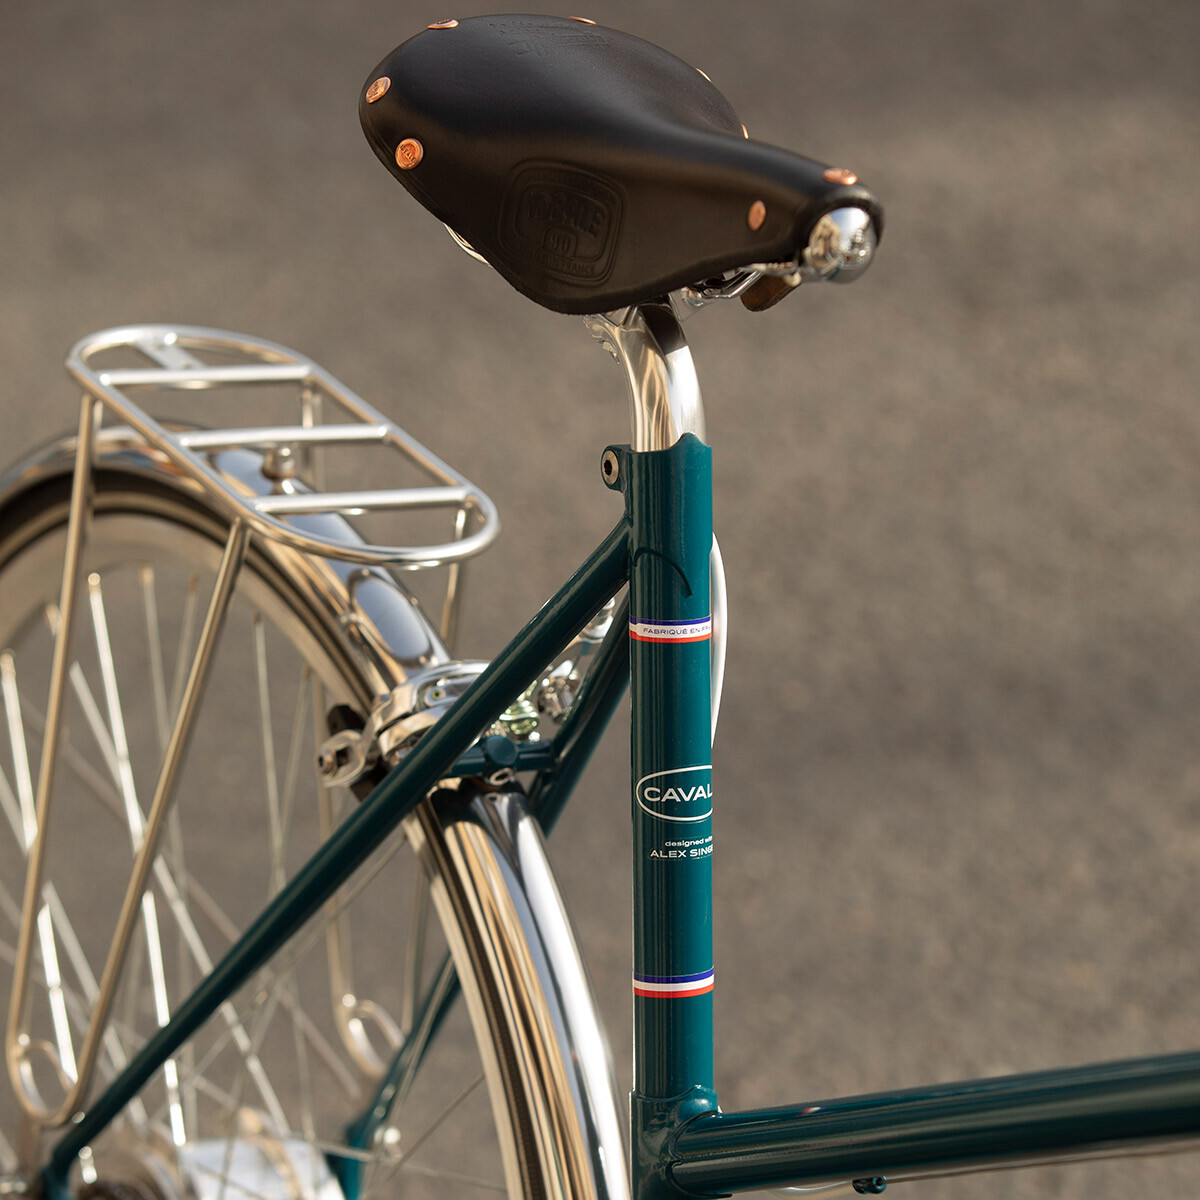 MSL x Cycles Cavale